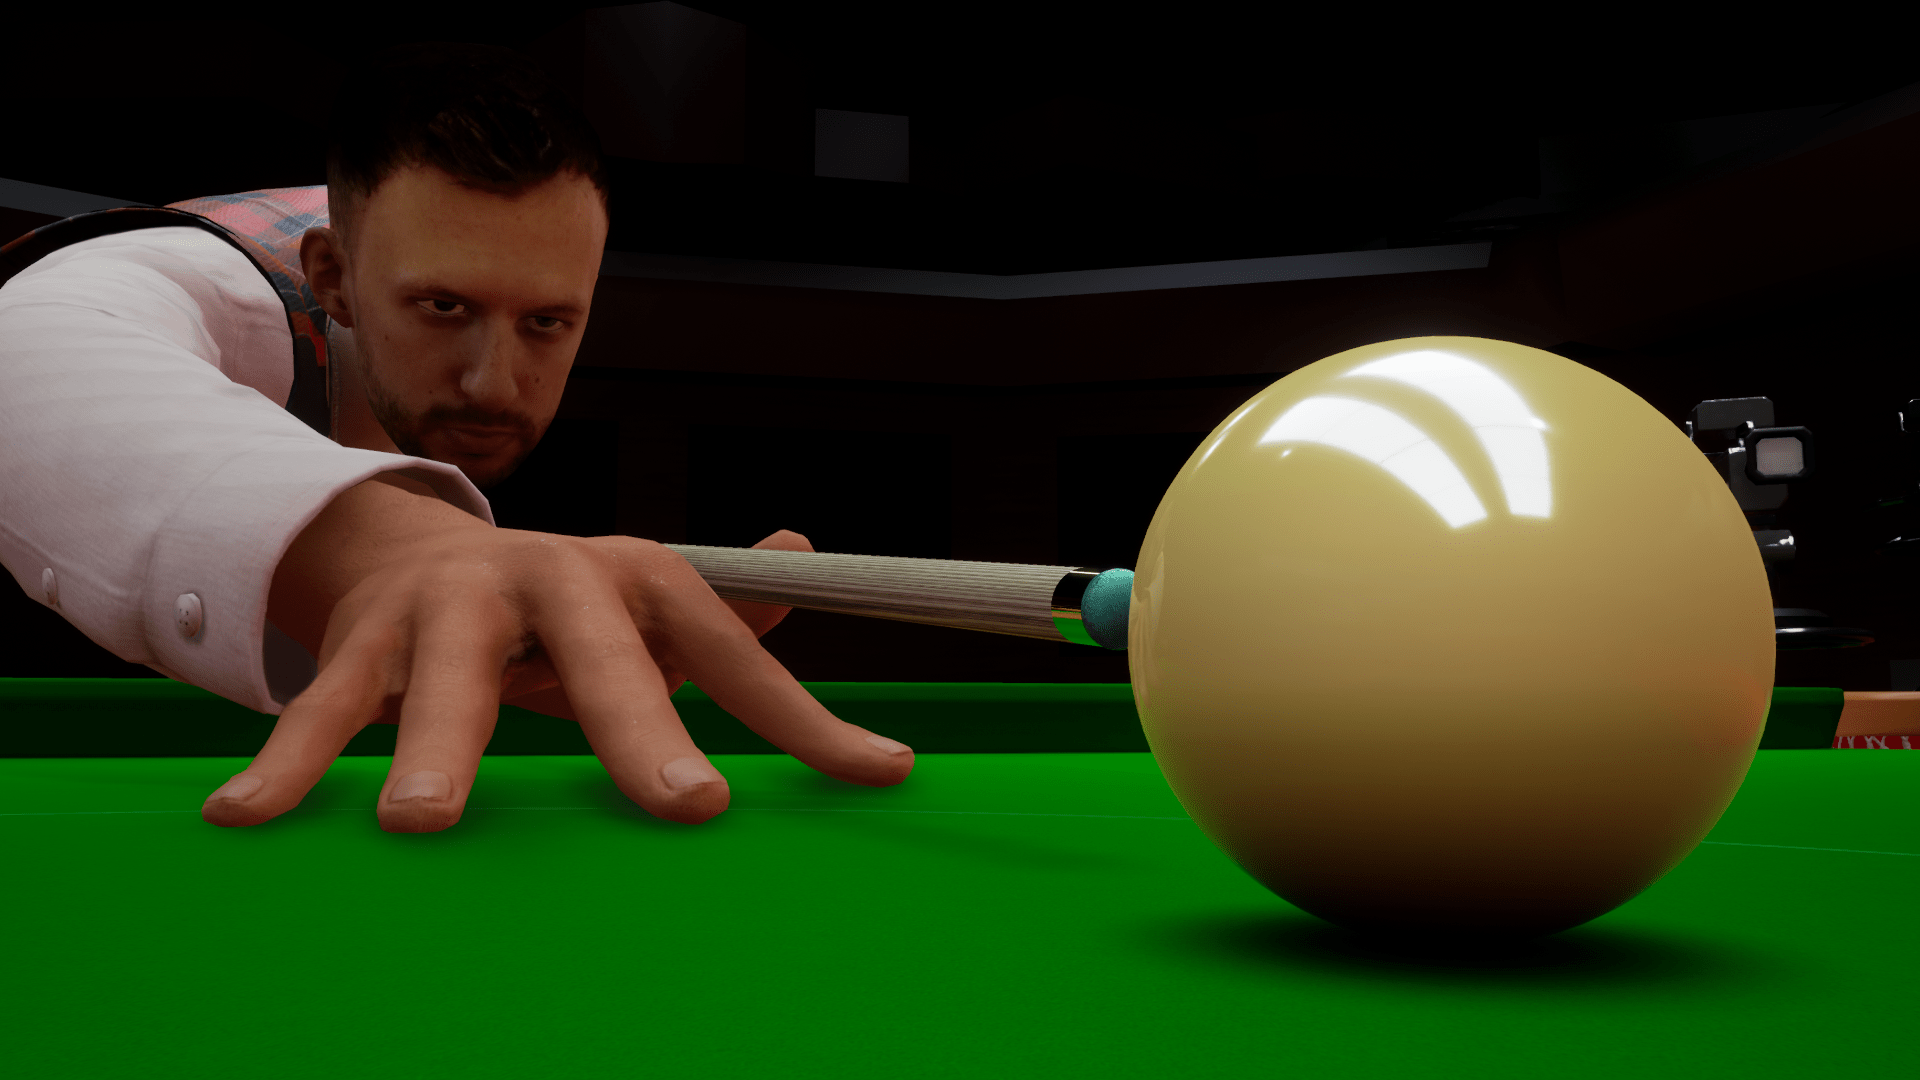 Officially licensed Snooker 19 announced for Xbox One